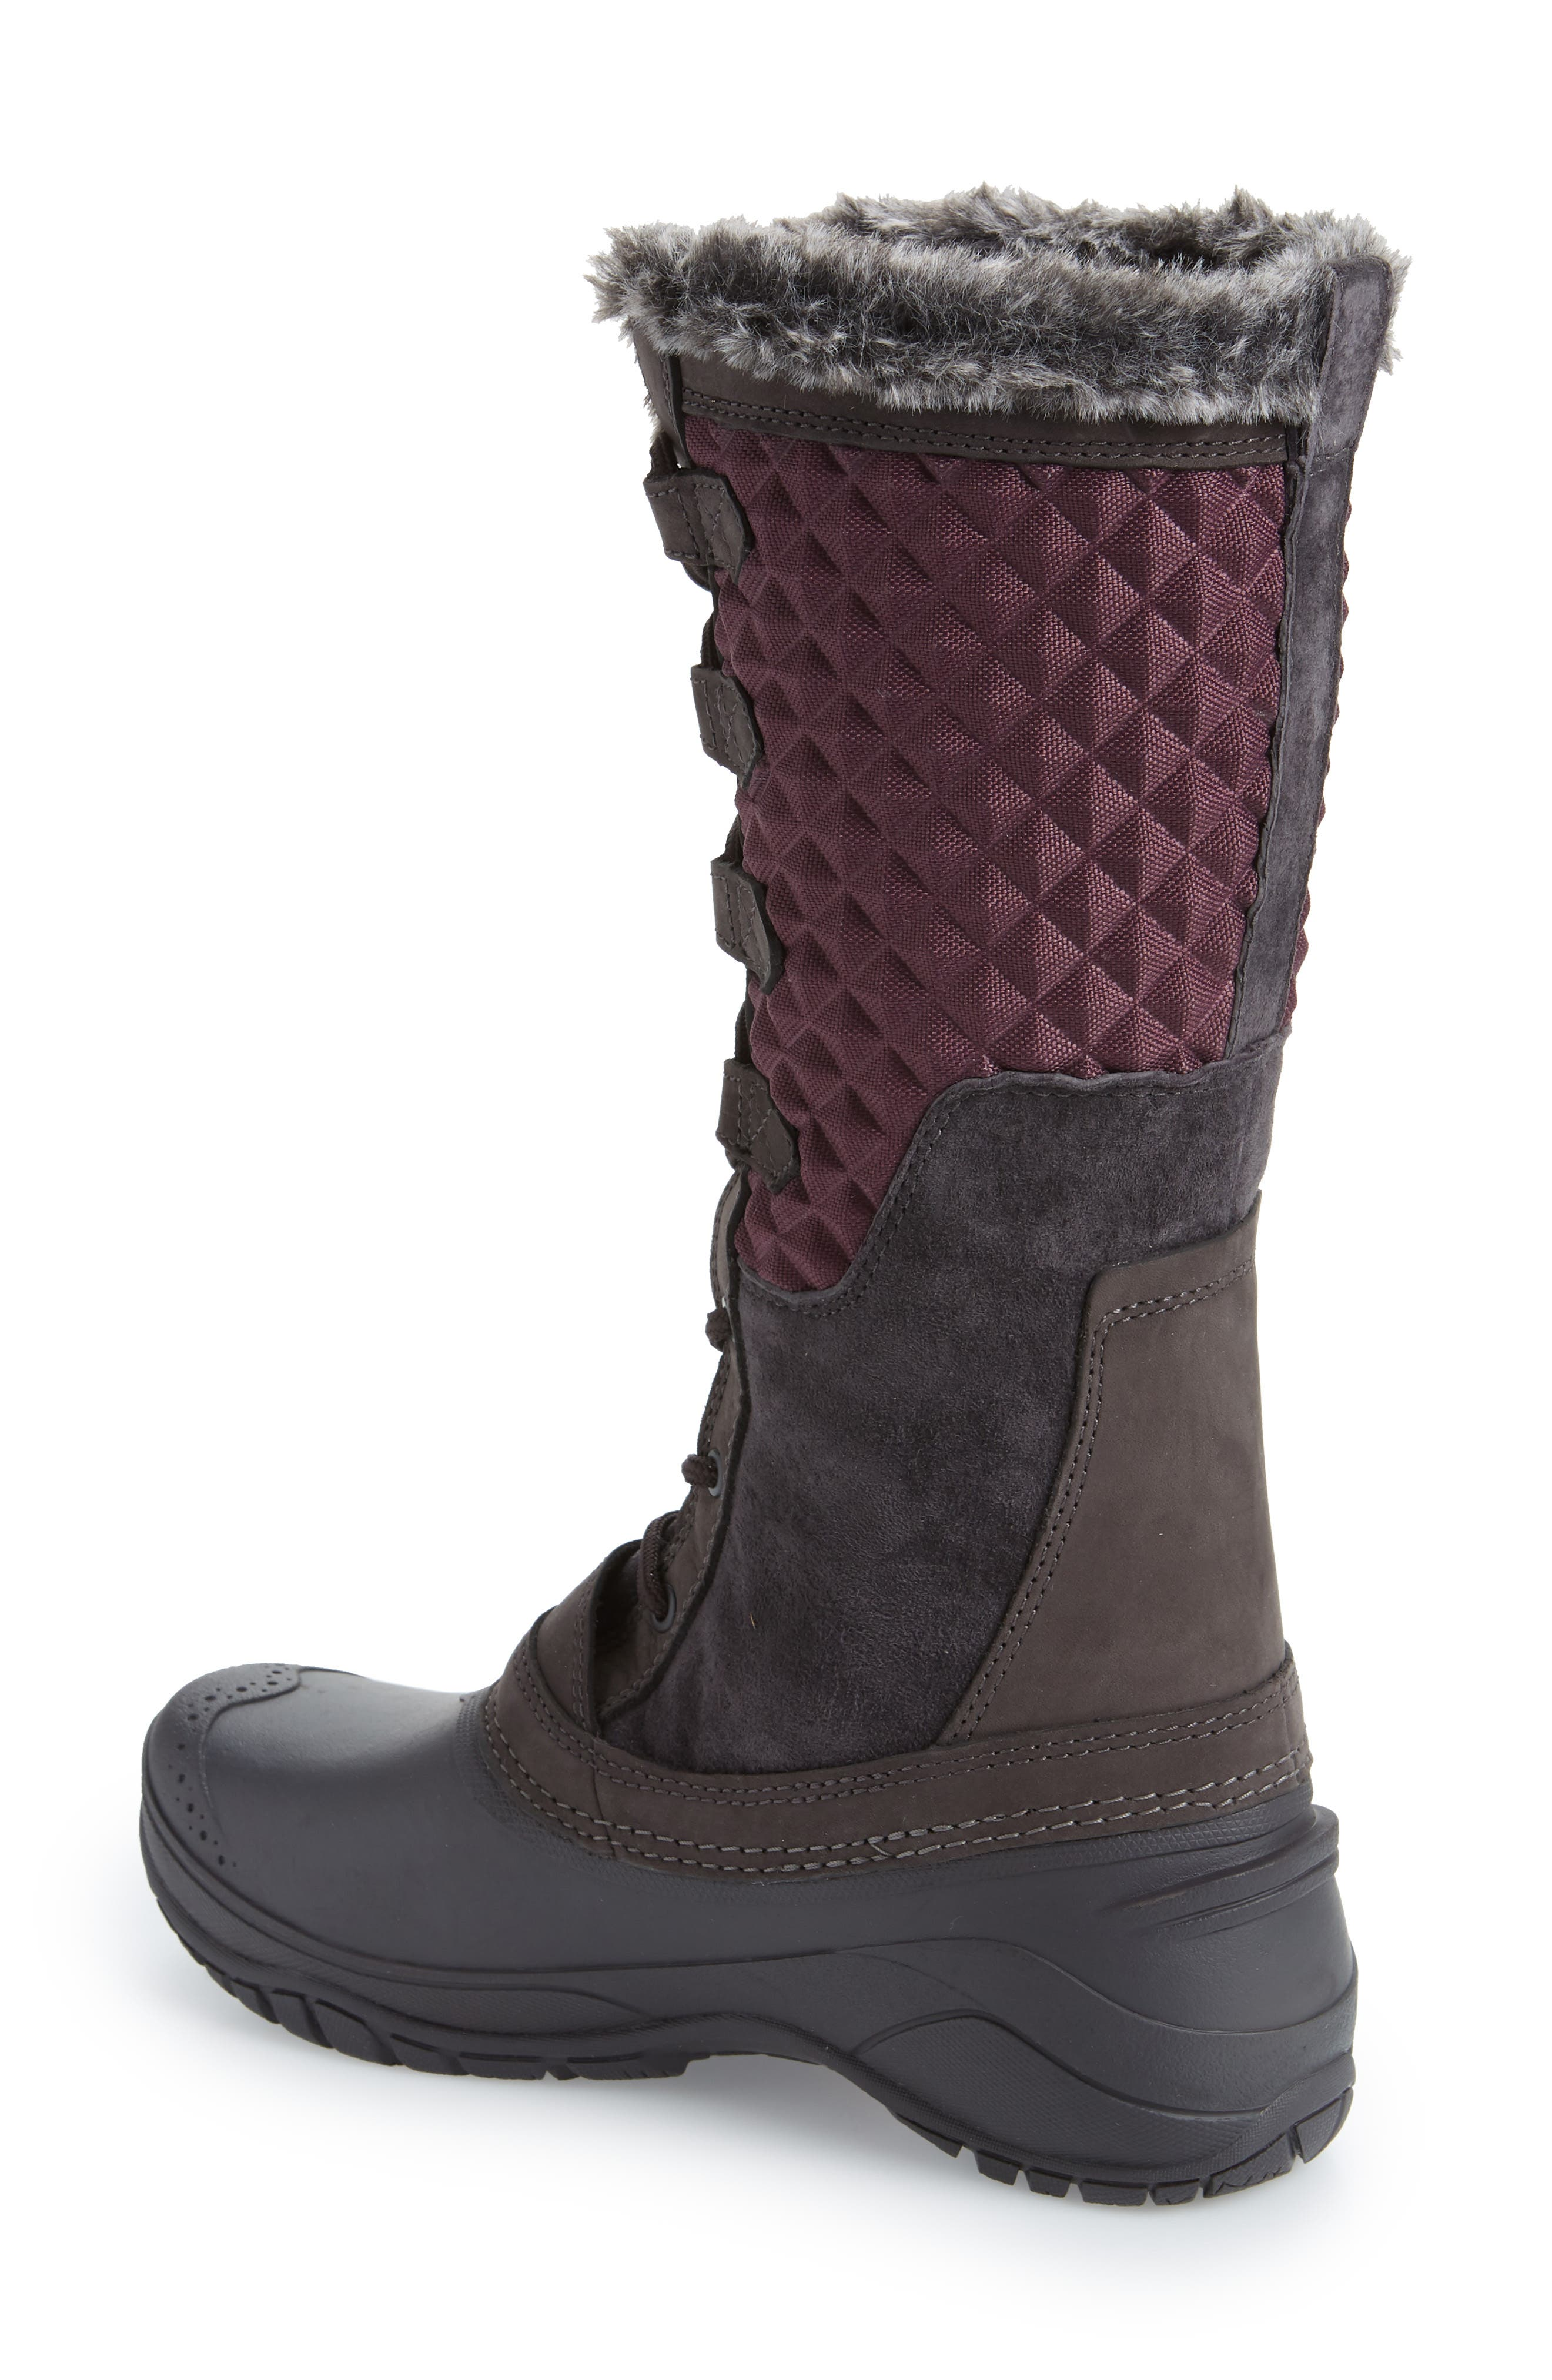 THE NORTH FACE, Shellista III Tall Waterproof Insulated Winter Boot, Alternate thumbnail 2, color, FIG/ WEATHERED BLACK